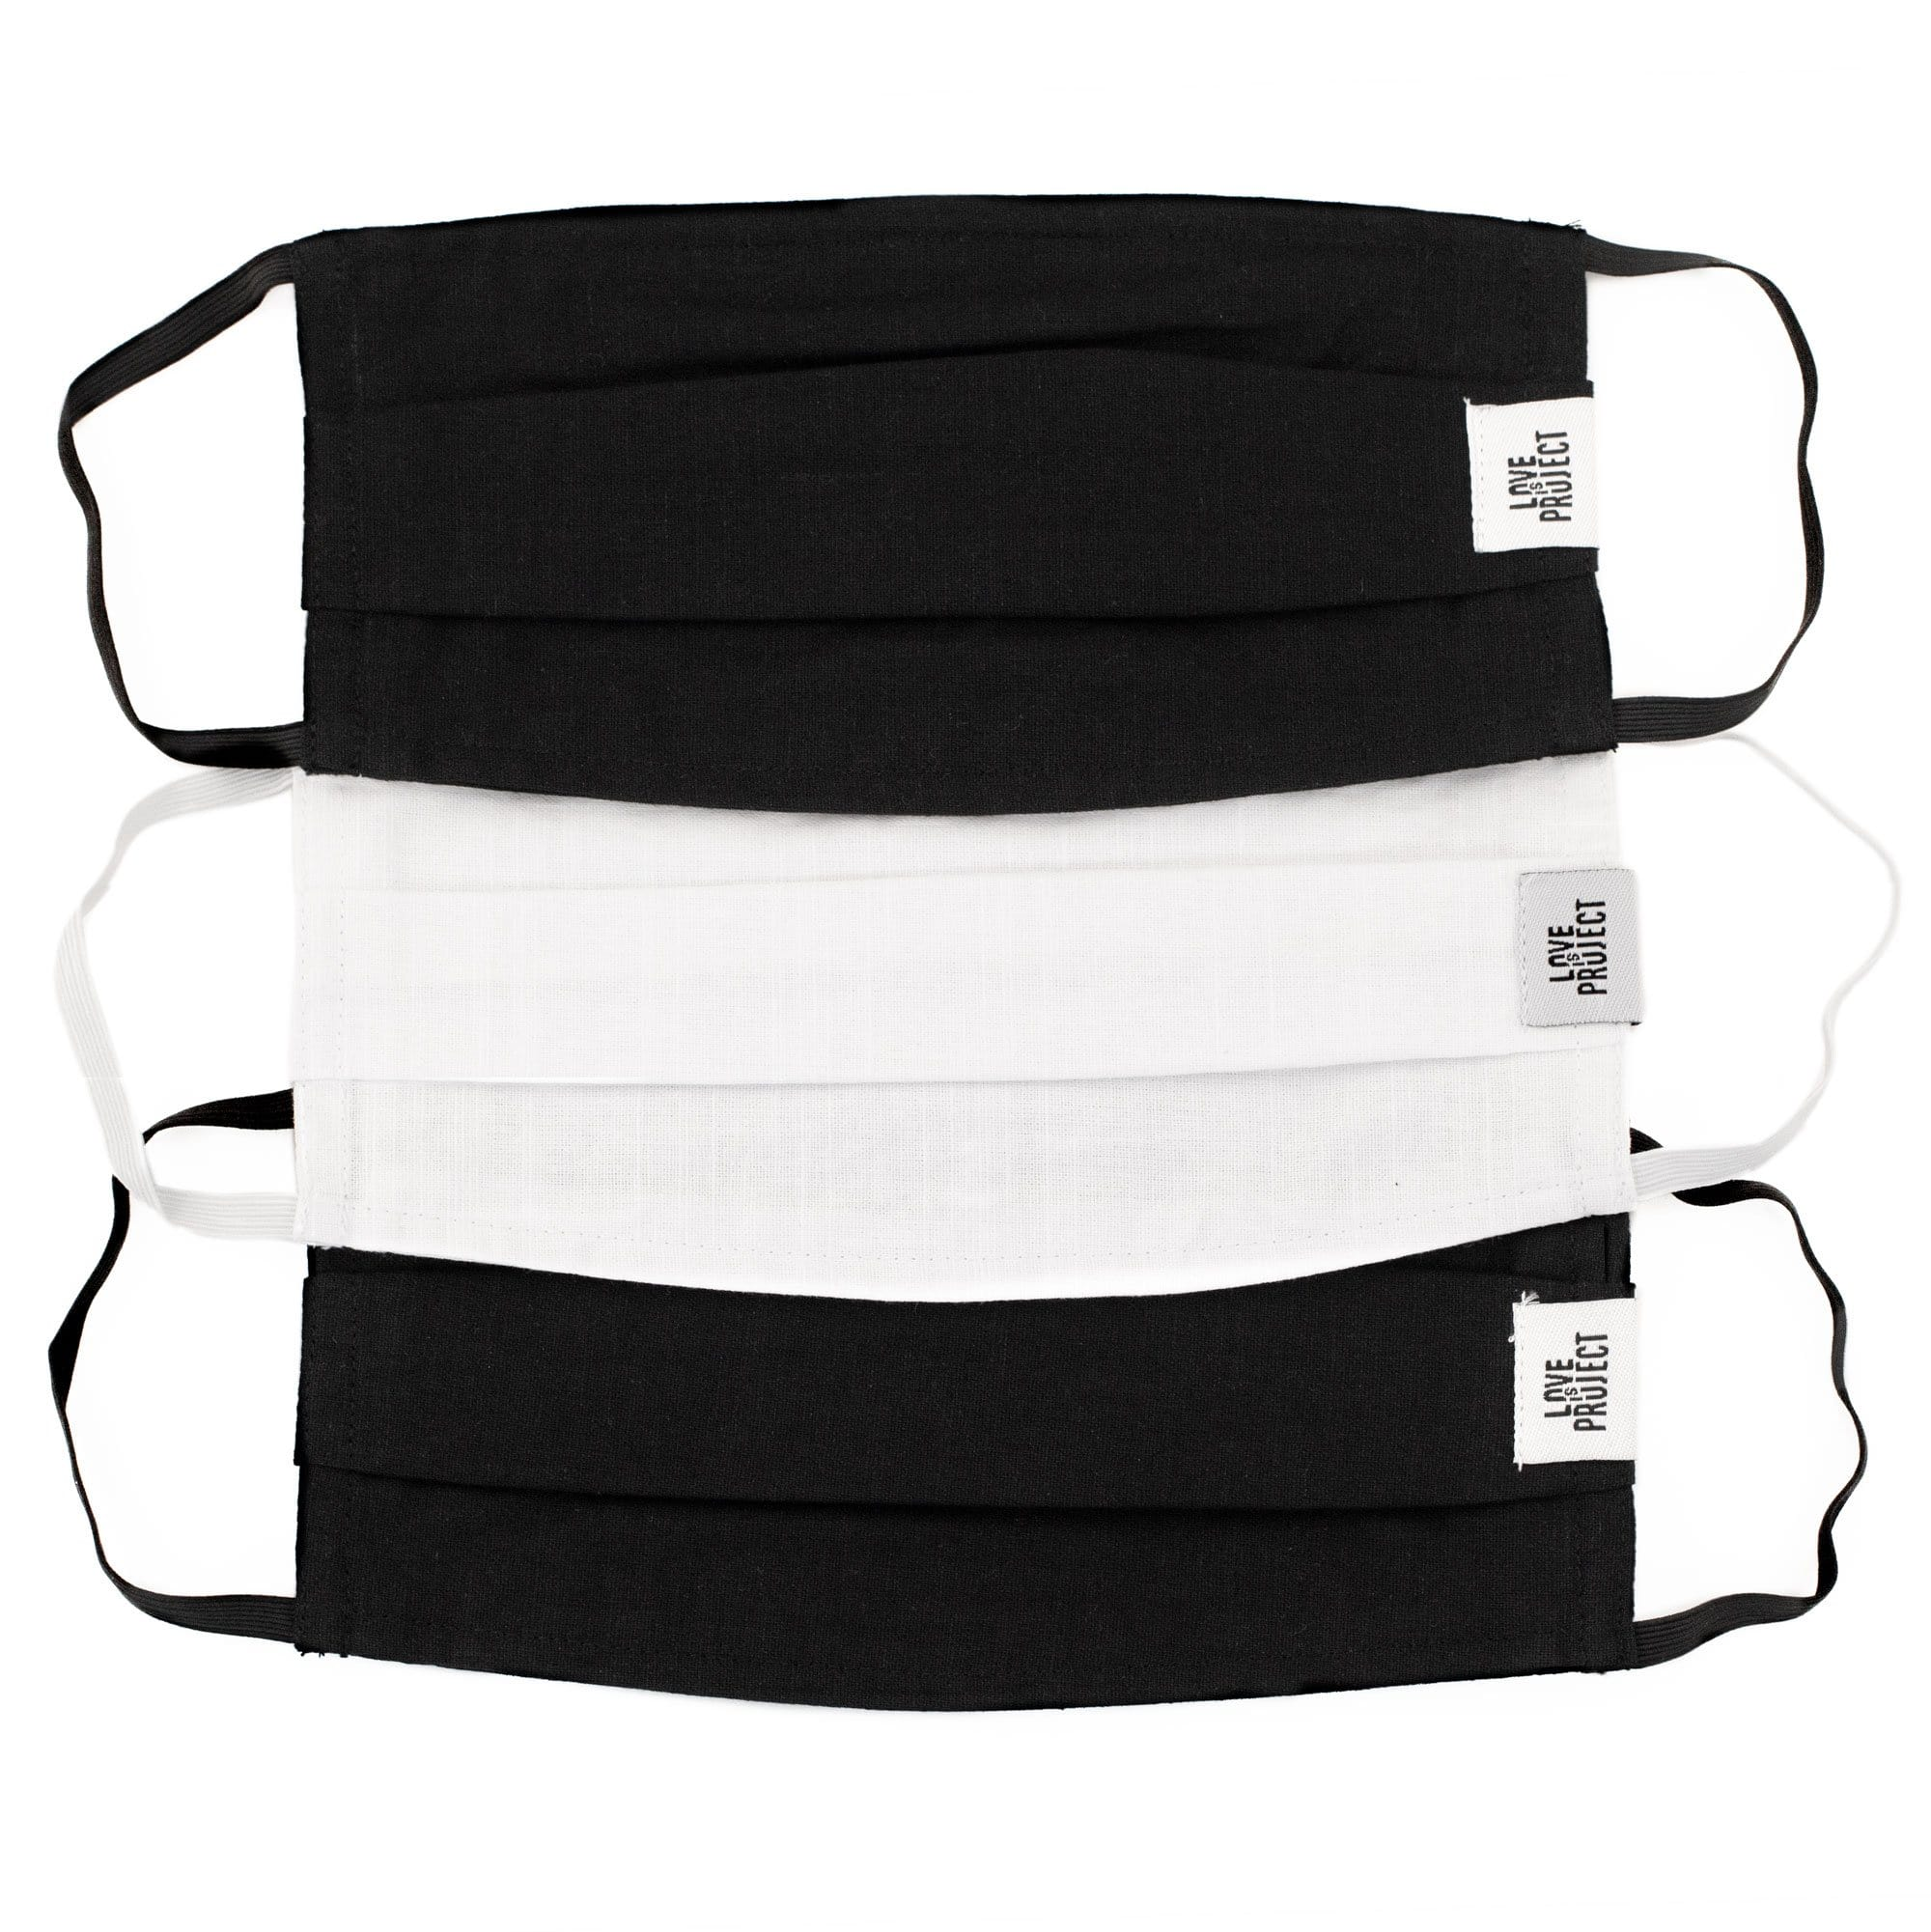 Bundle - Black and White Masks (Set of 3)